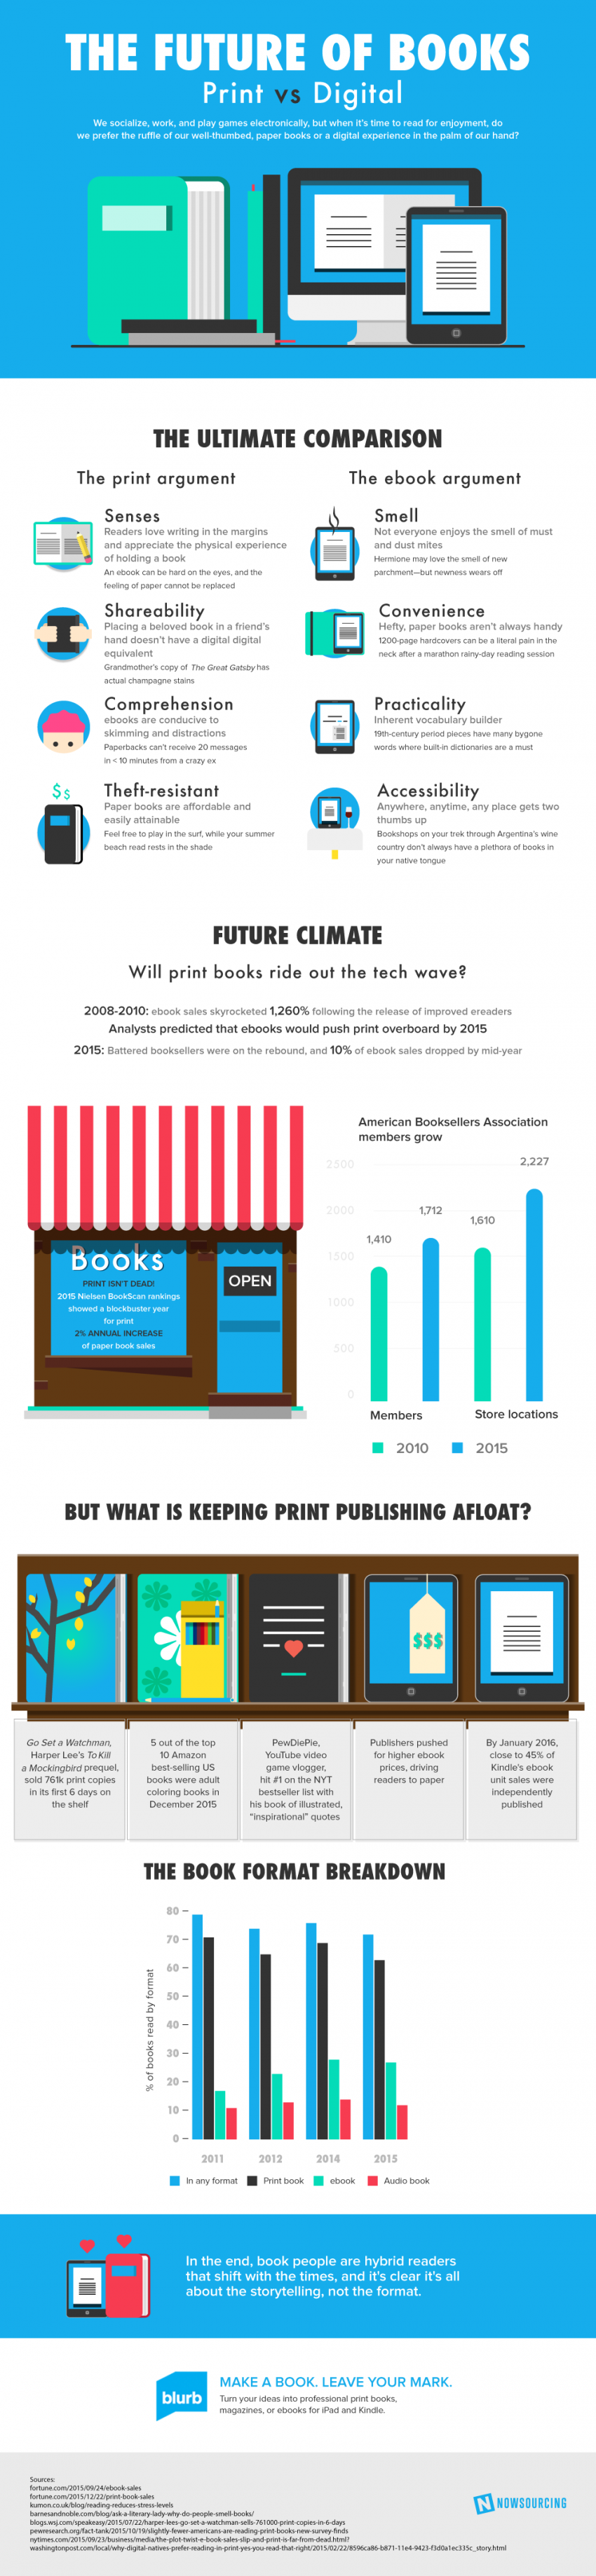 The Future of Books: Printed Books vs Ebooks Infographic